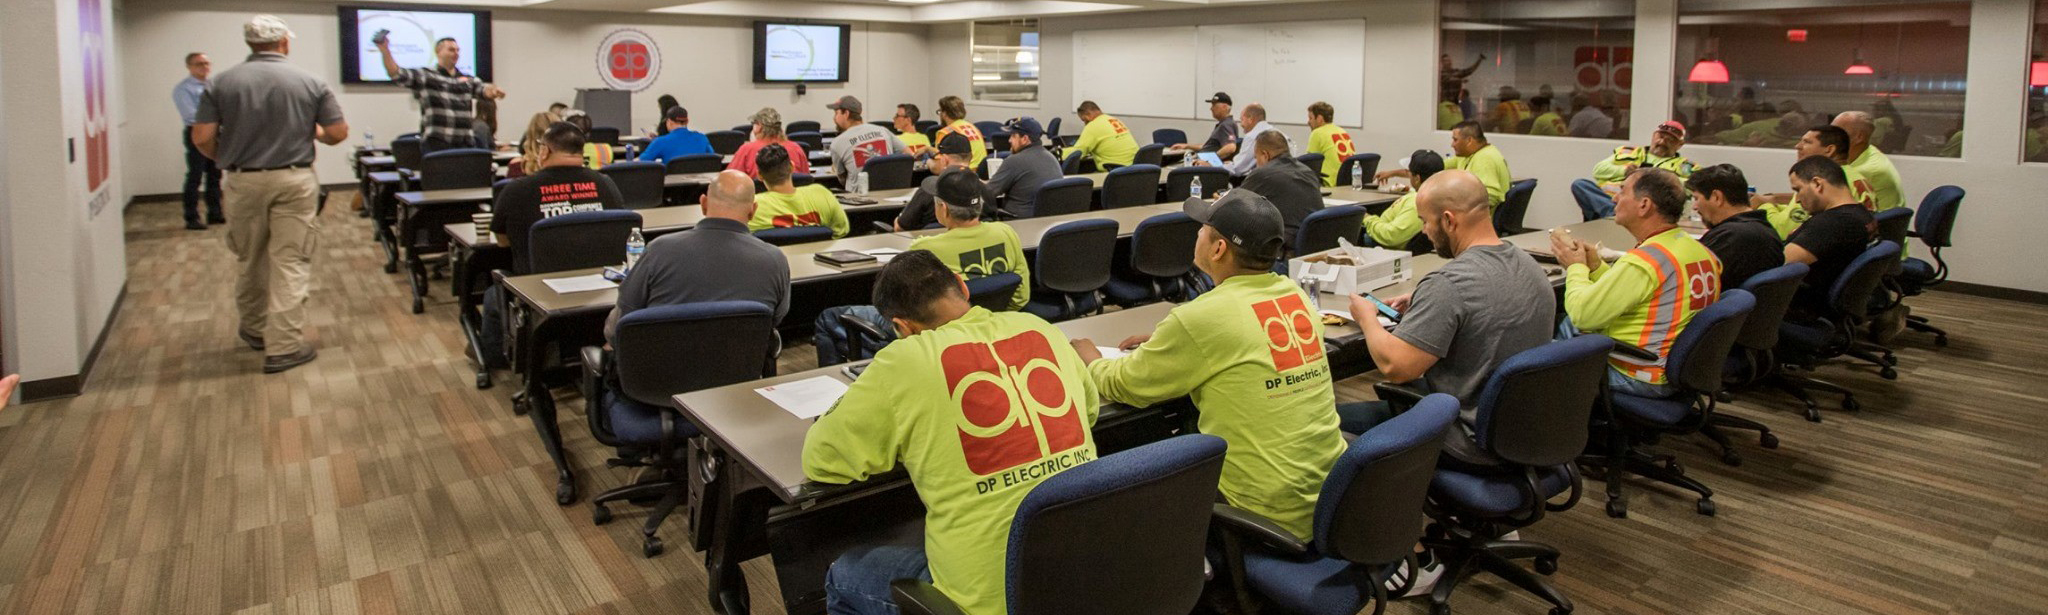 DP Electric Integrates NCCER Curriculum During Annual Development Program